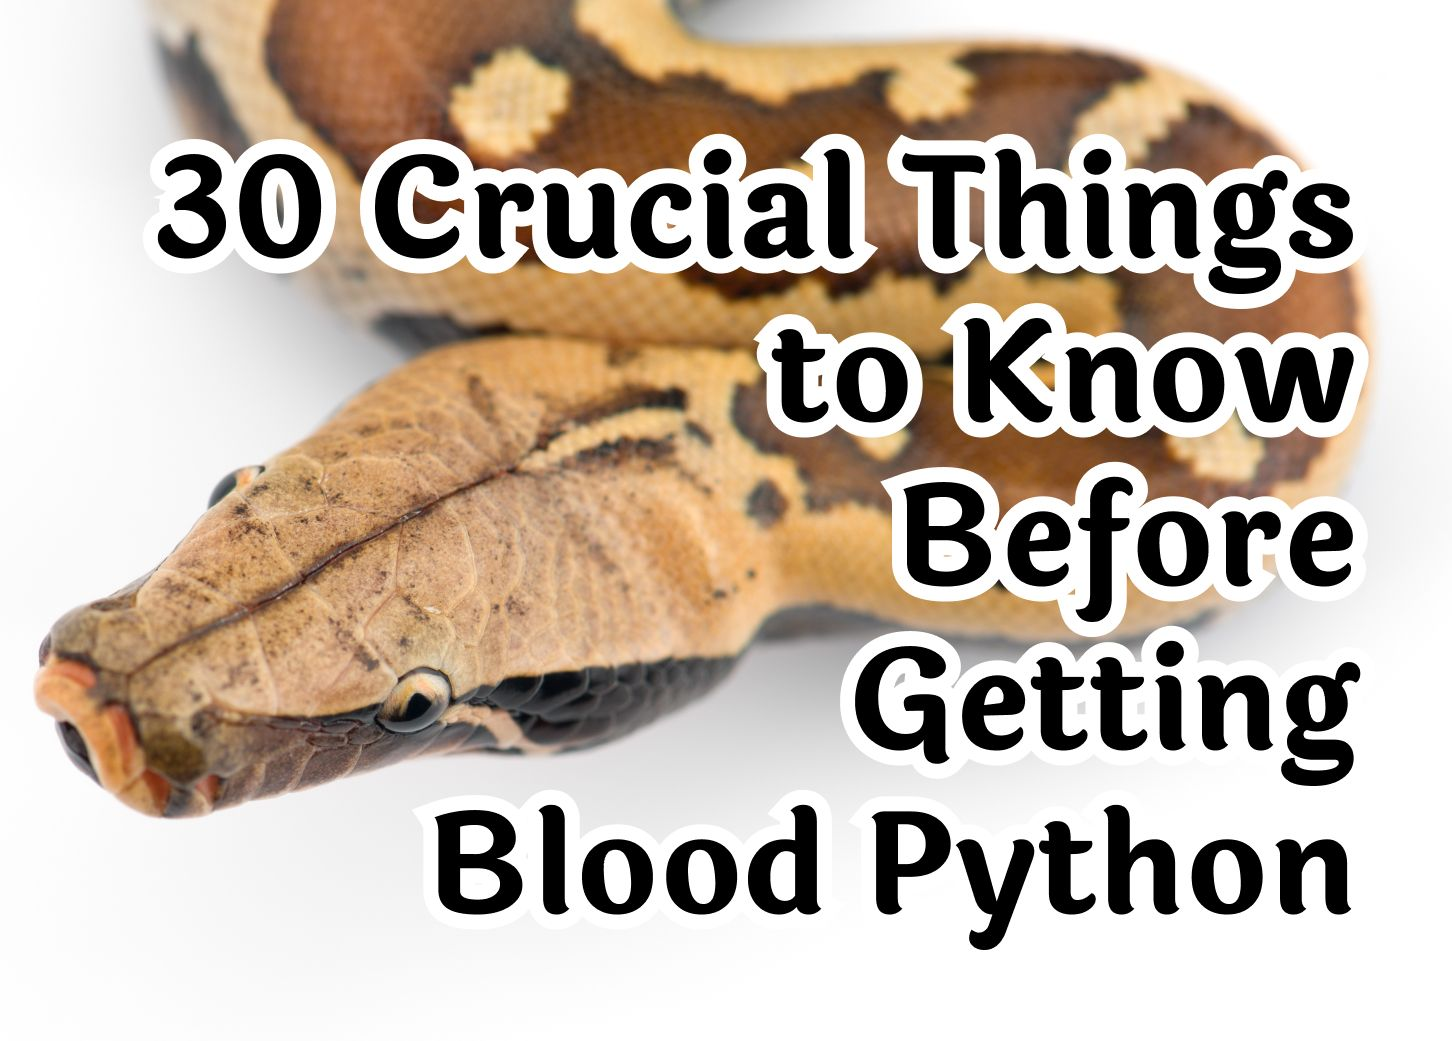 30 Crucial Things to Know About the Blood Python